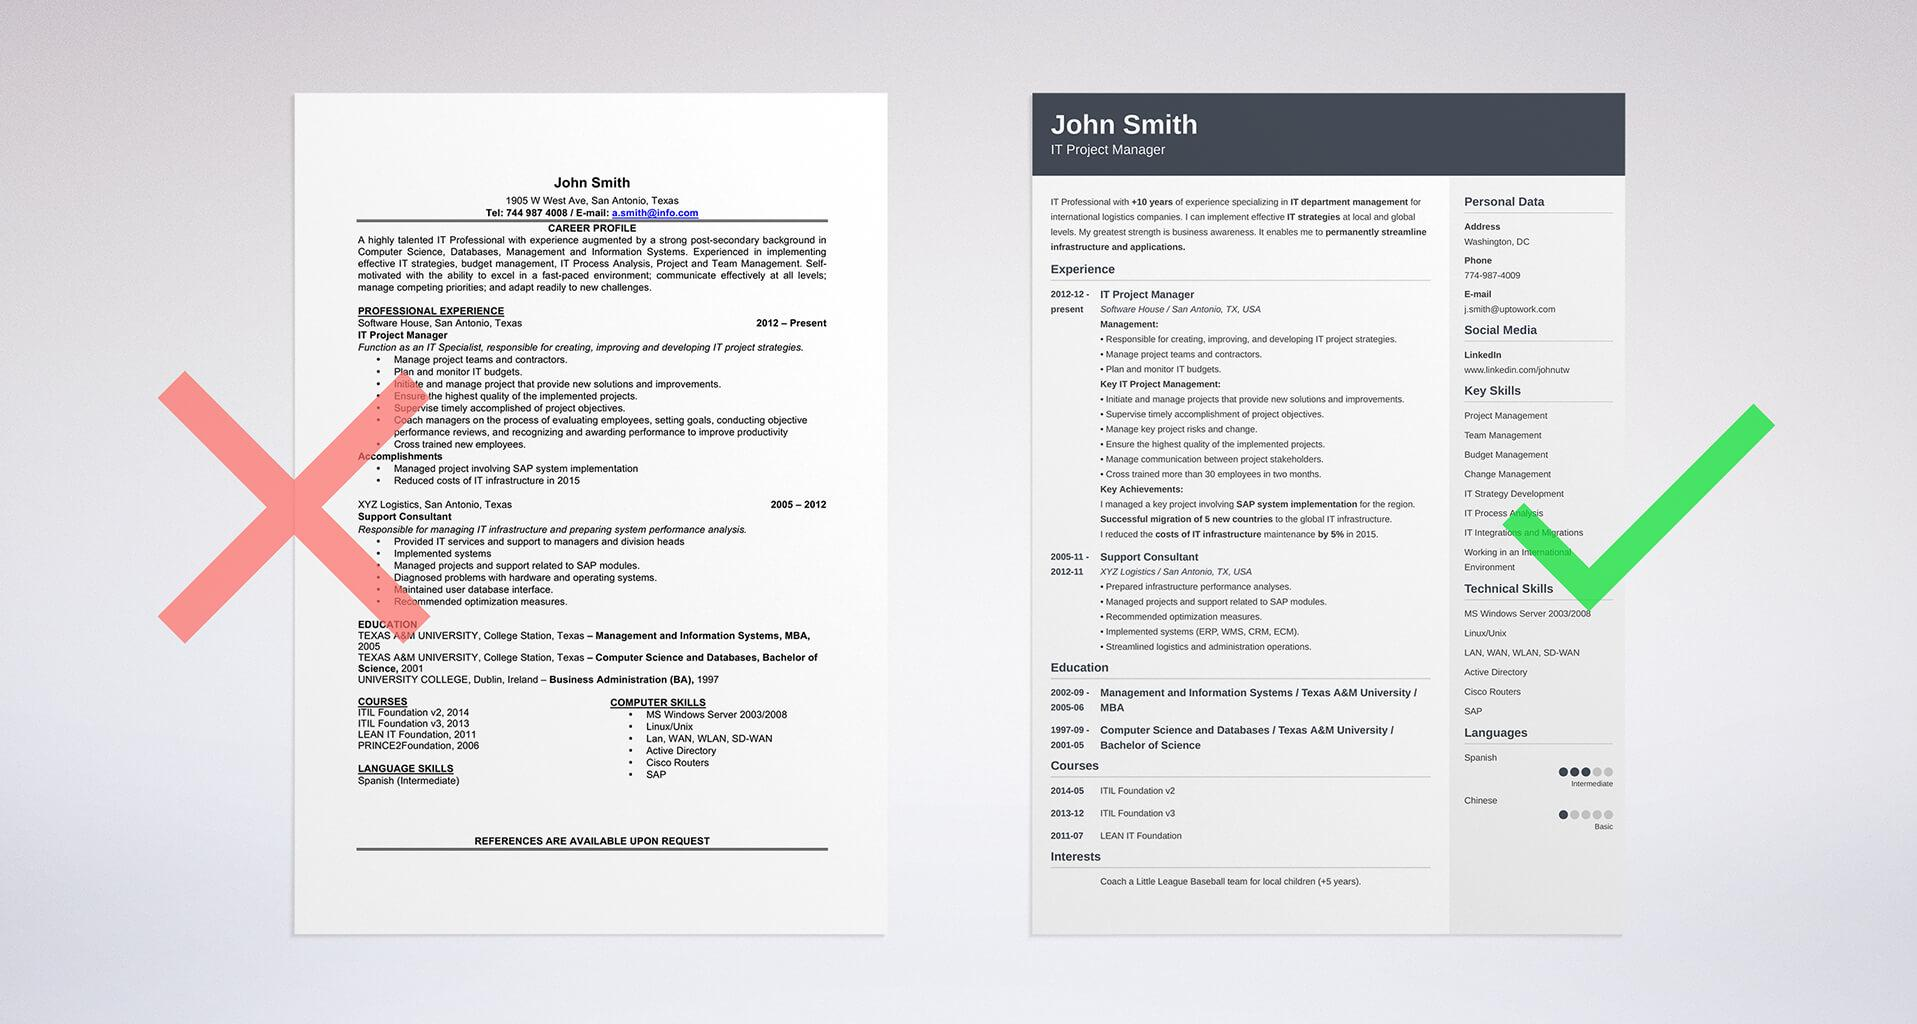 resume formats Dorit.mercatodos.co